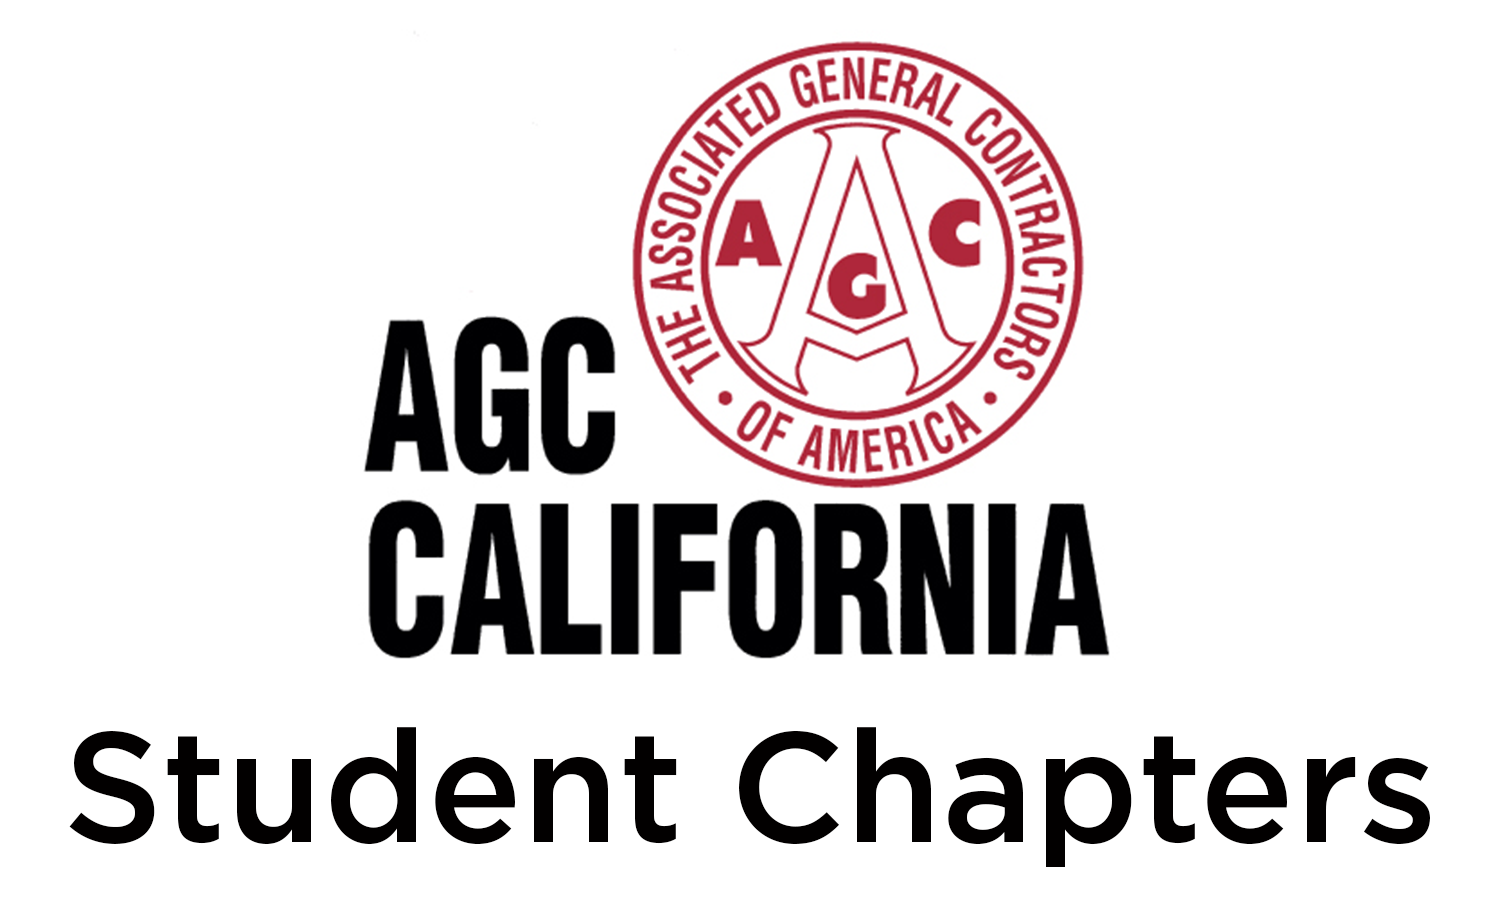 AGC California Student Chapter Toolbox